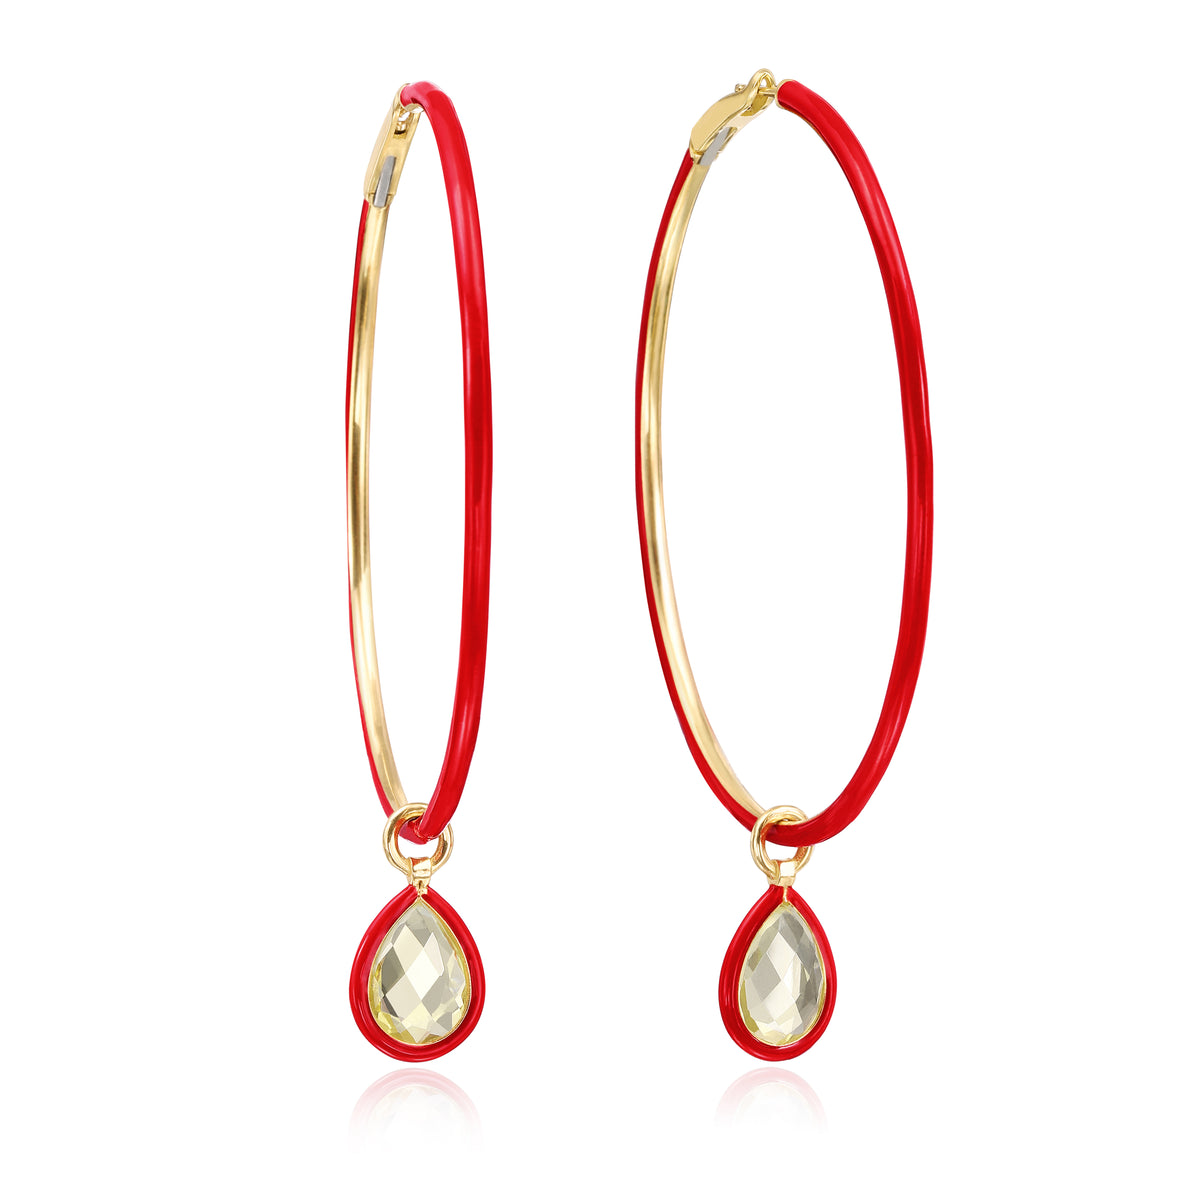 Large Enamel Hoops in Red - Nina Runsdorf